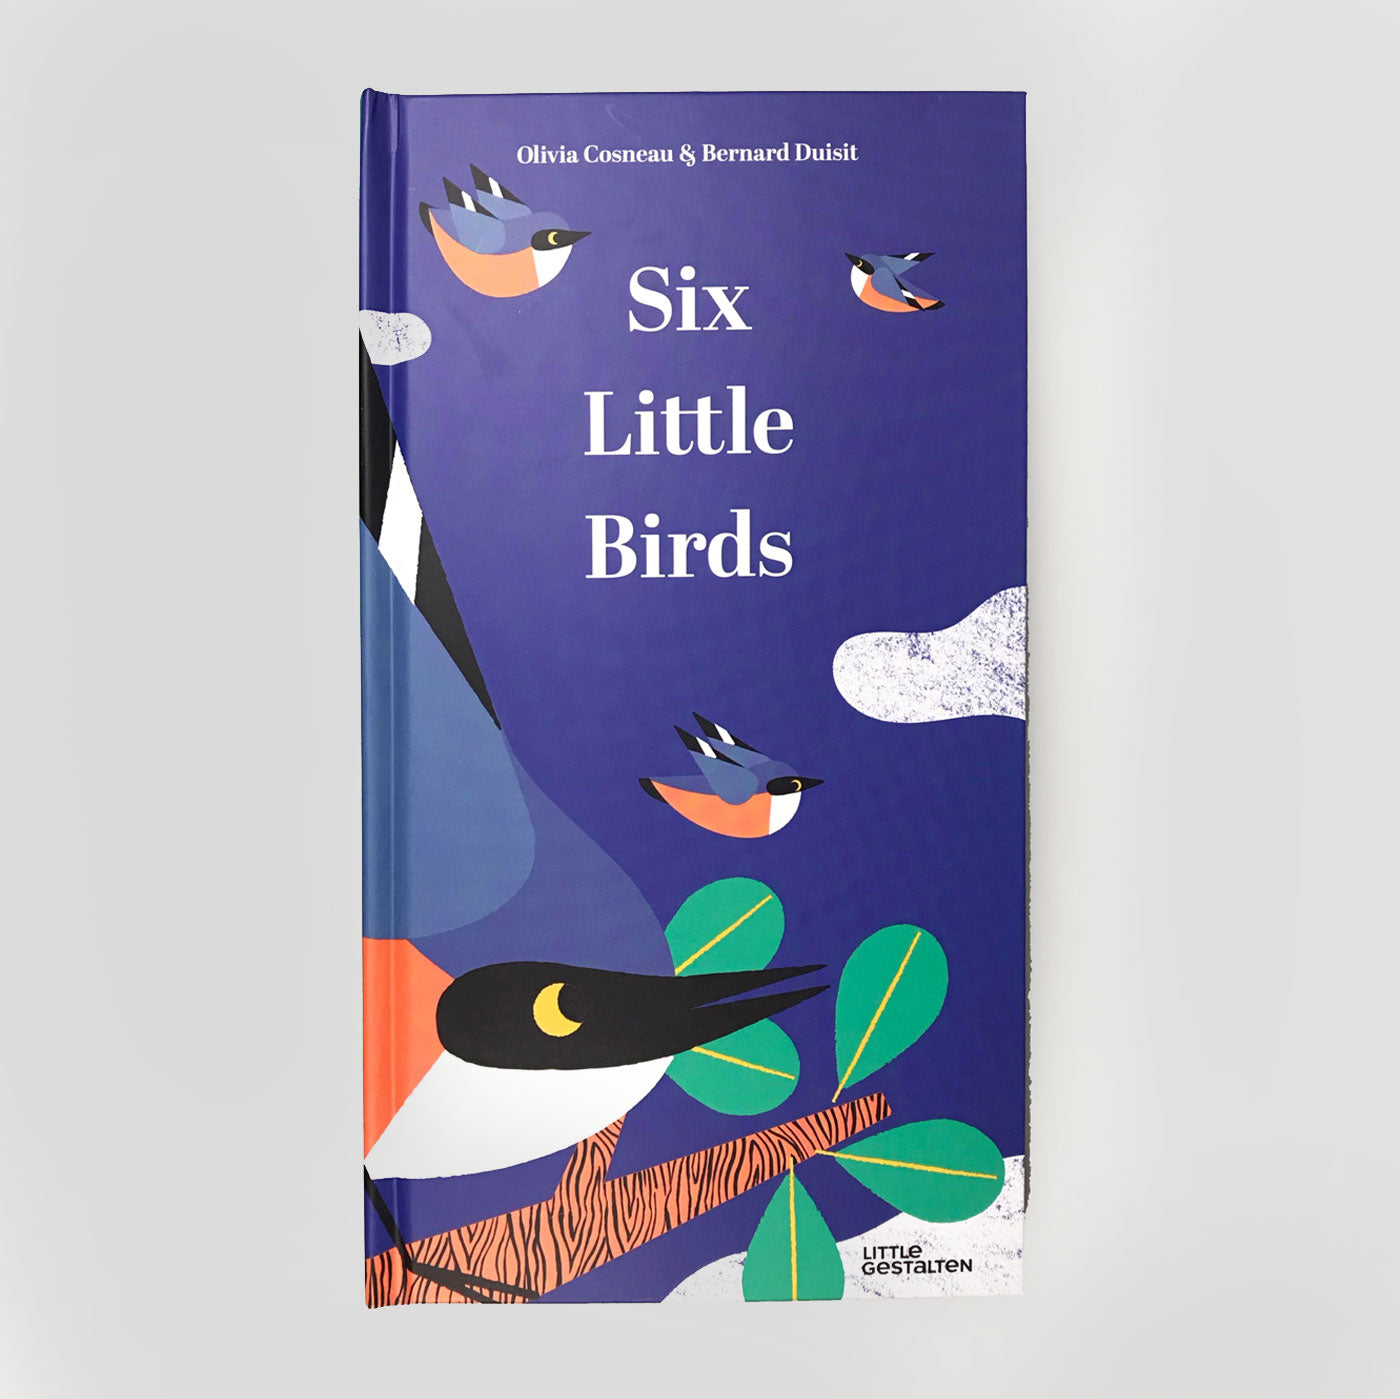 Six Little Birds - Olivia Cosneau & Bernard Duisit